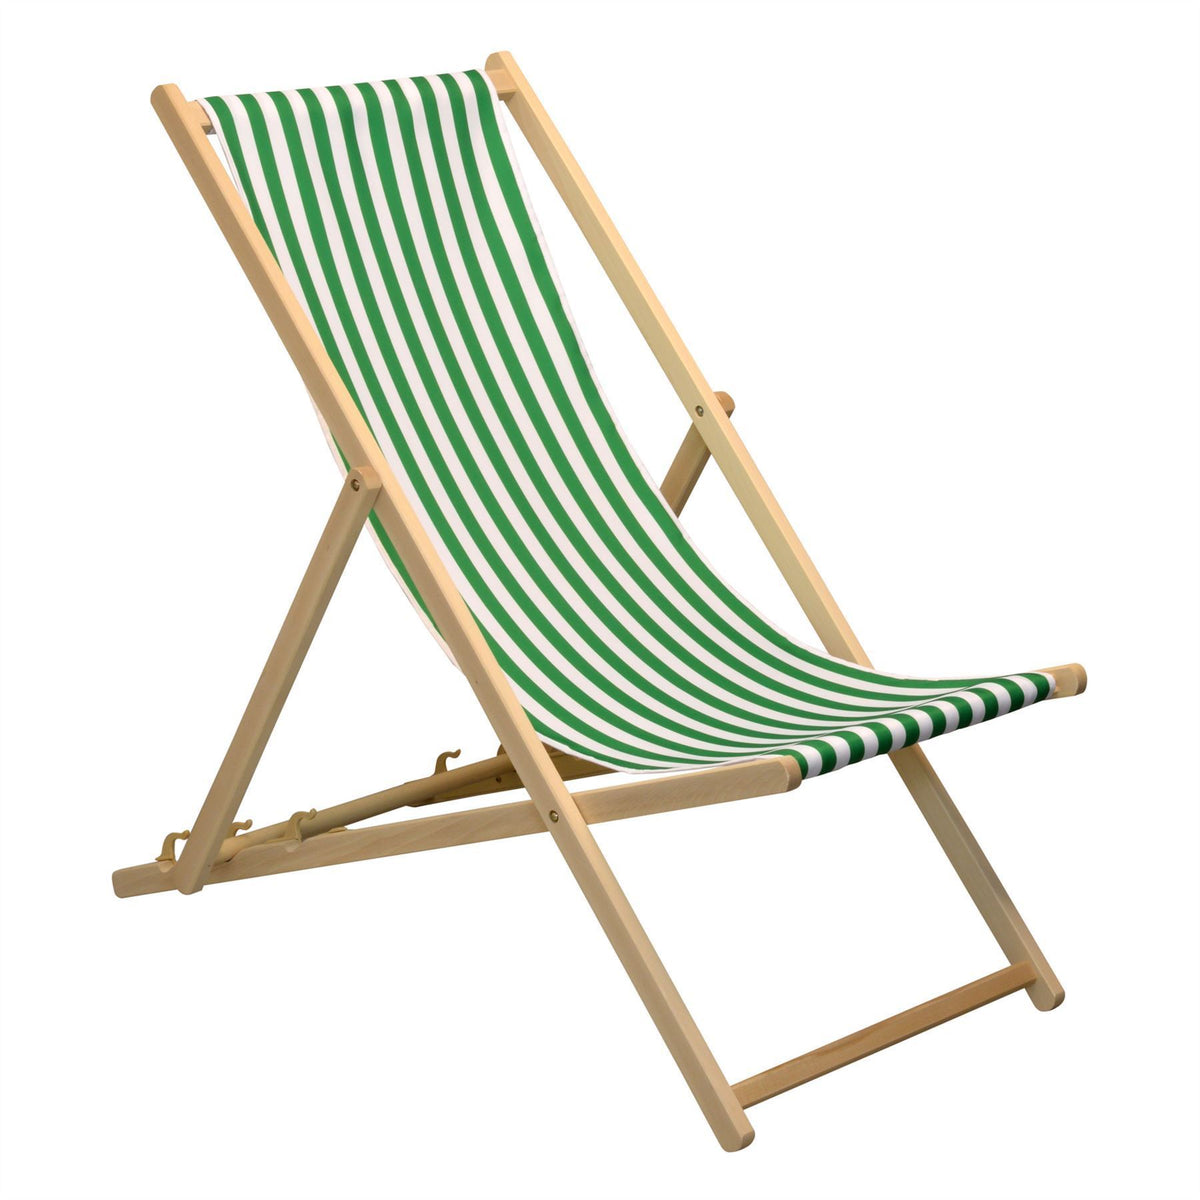 Harbour Housewares Beach Deck Chair - Green/White Stripe with Beech Wood Frame